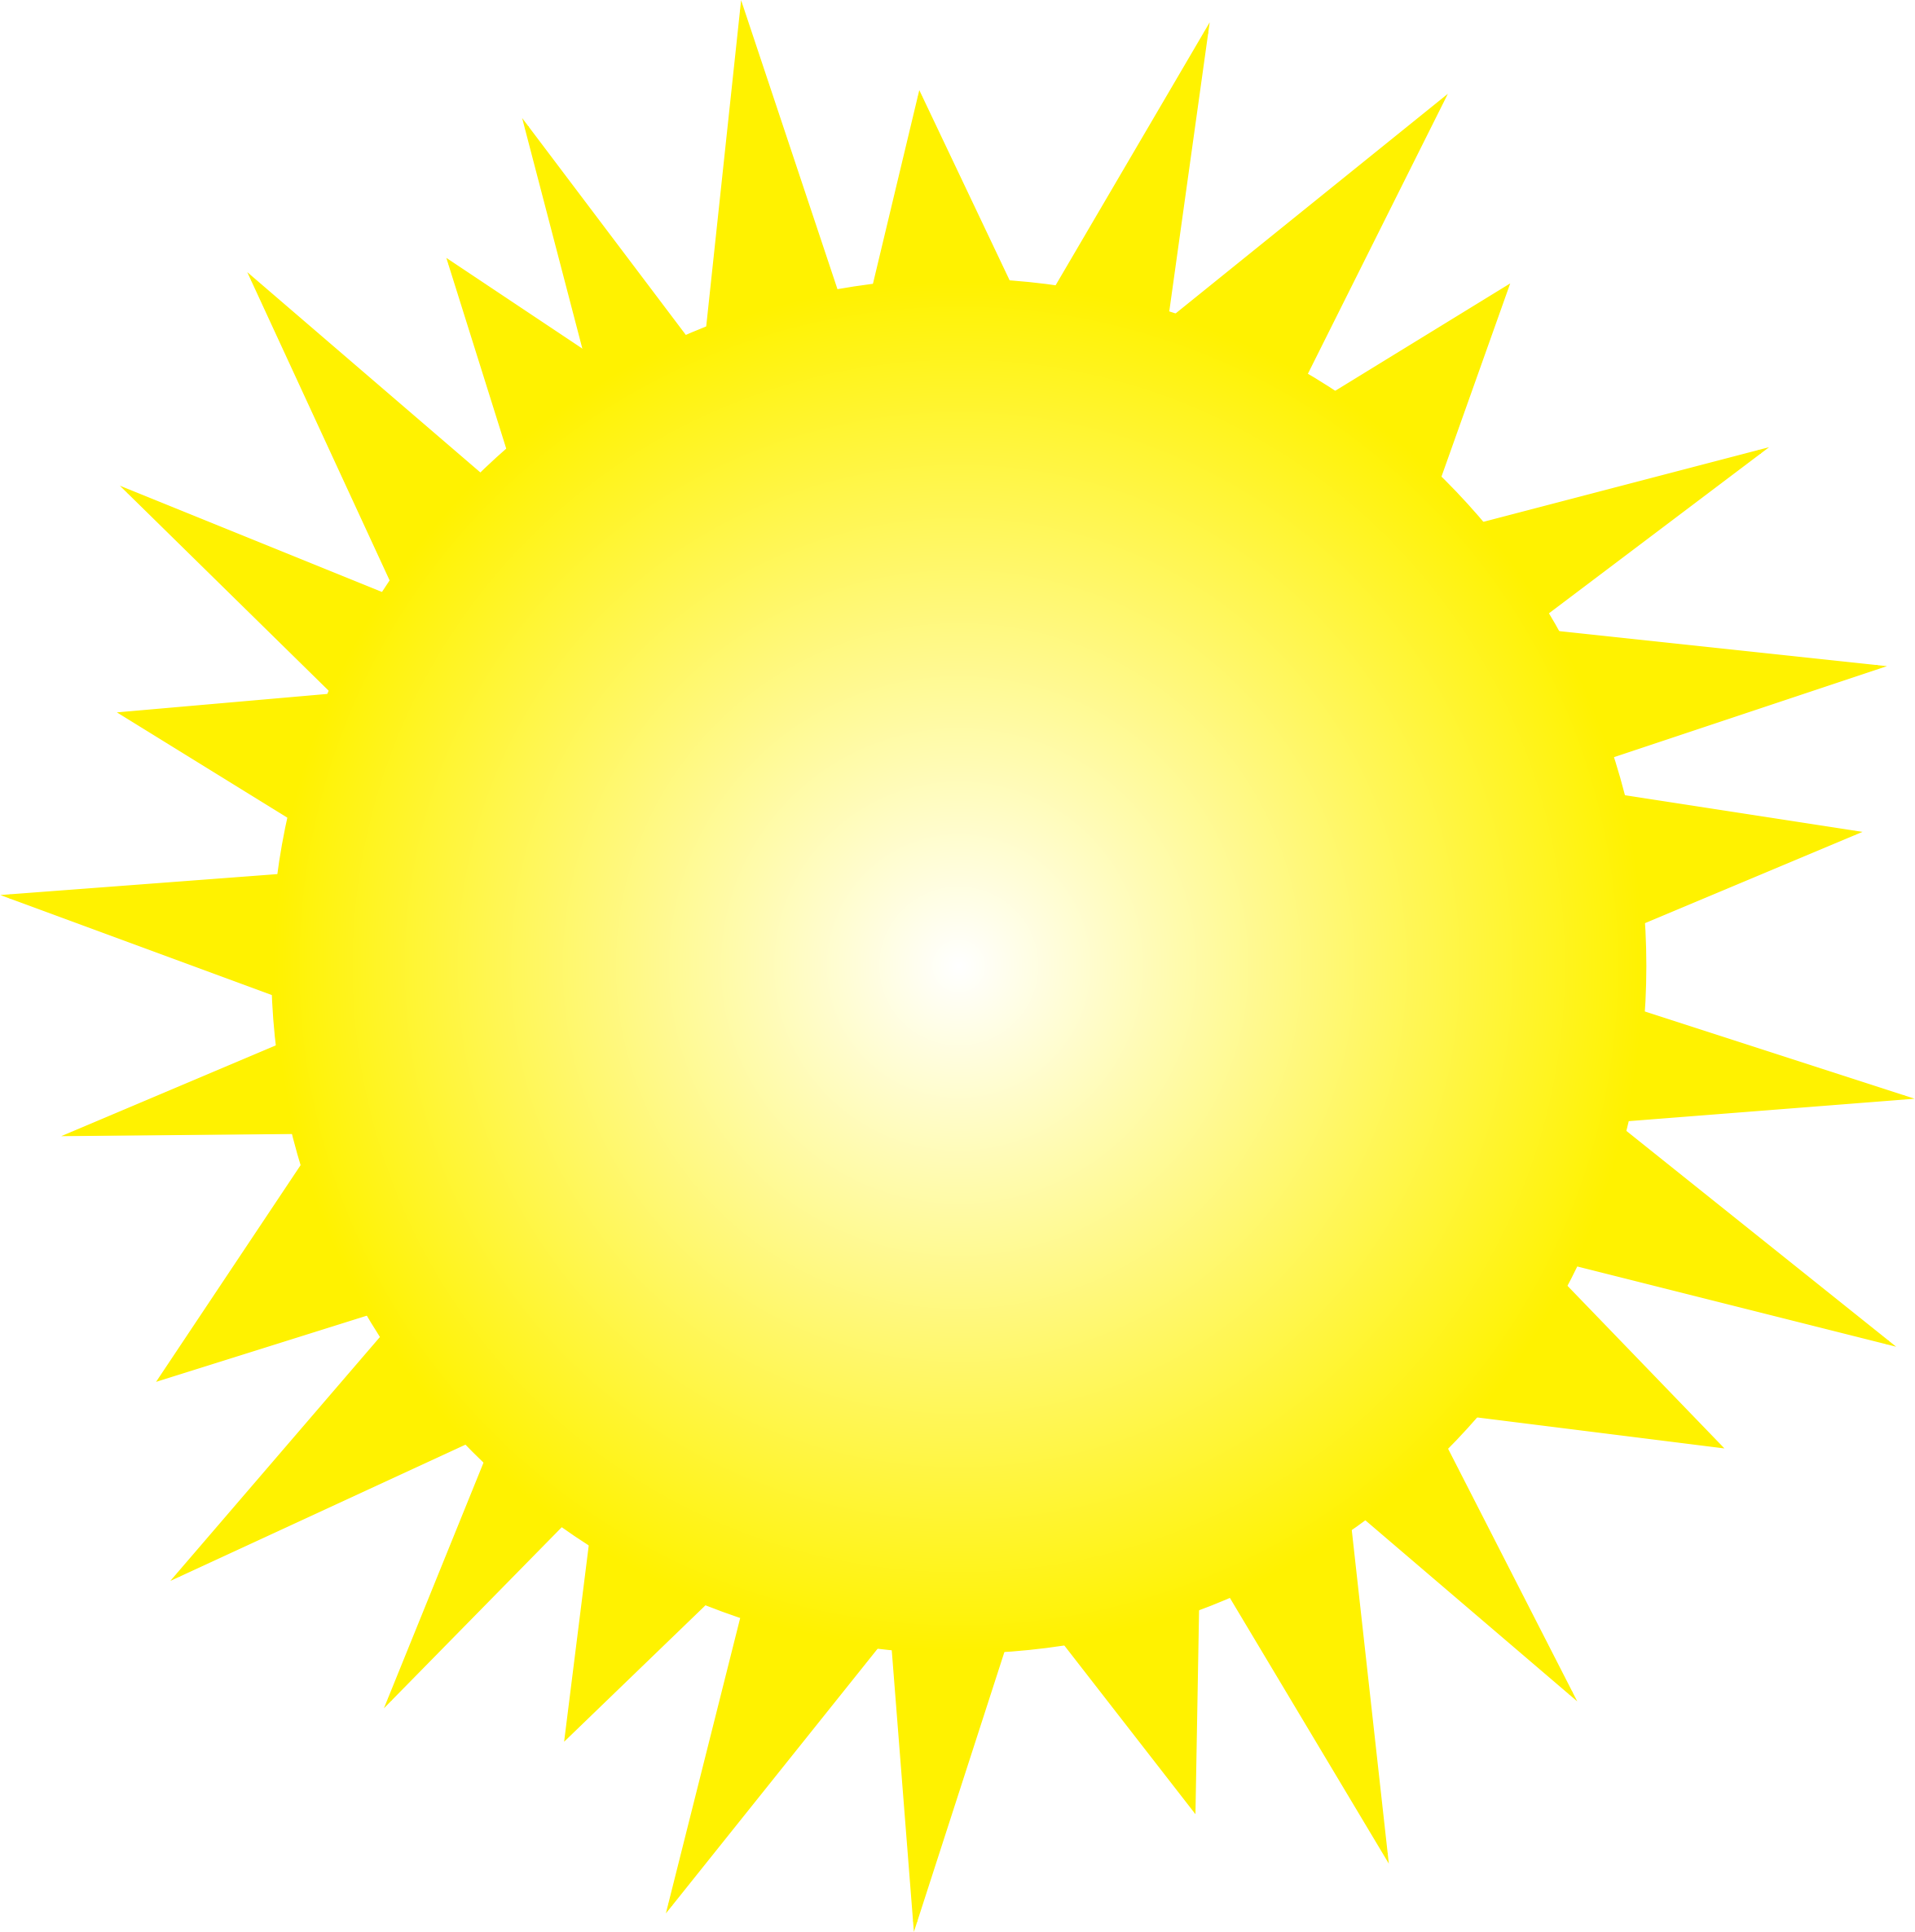 Sun Shining PNG HD - 146232